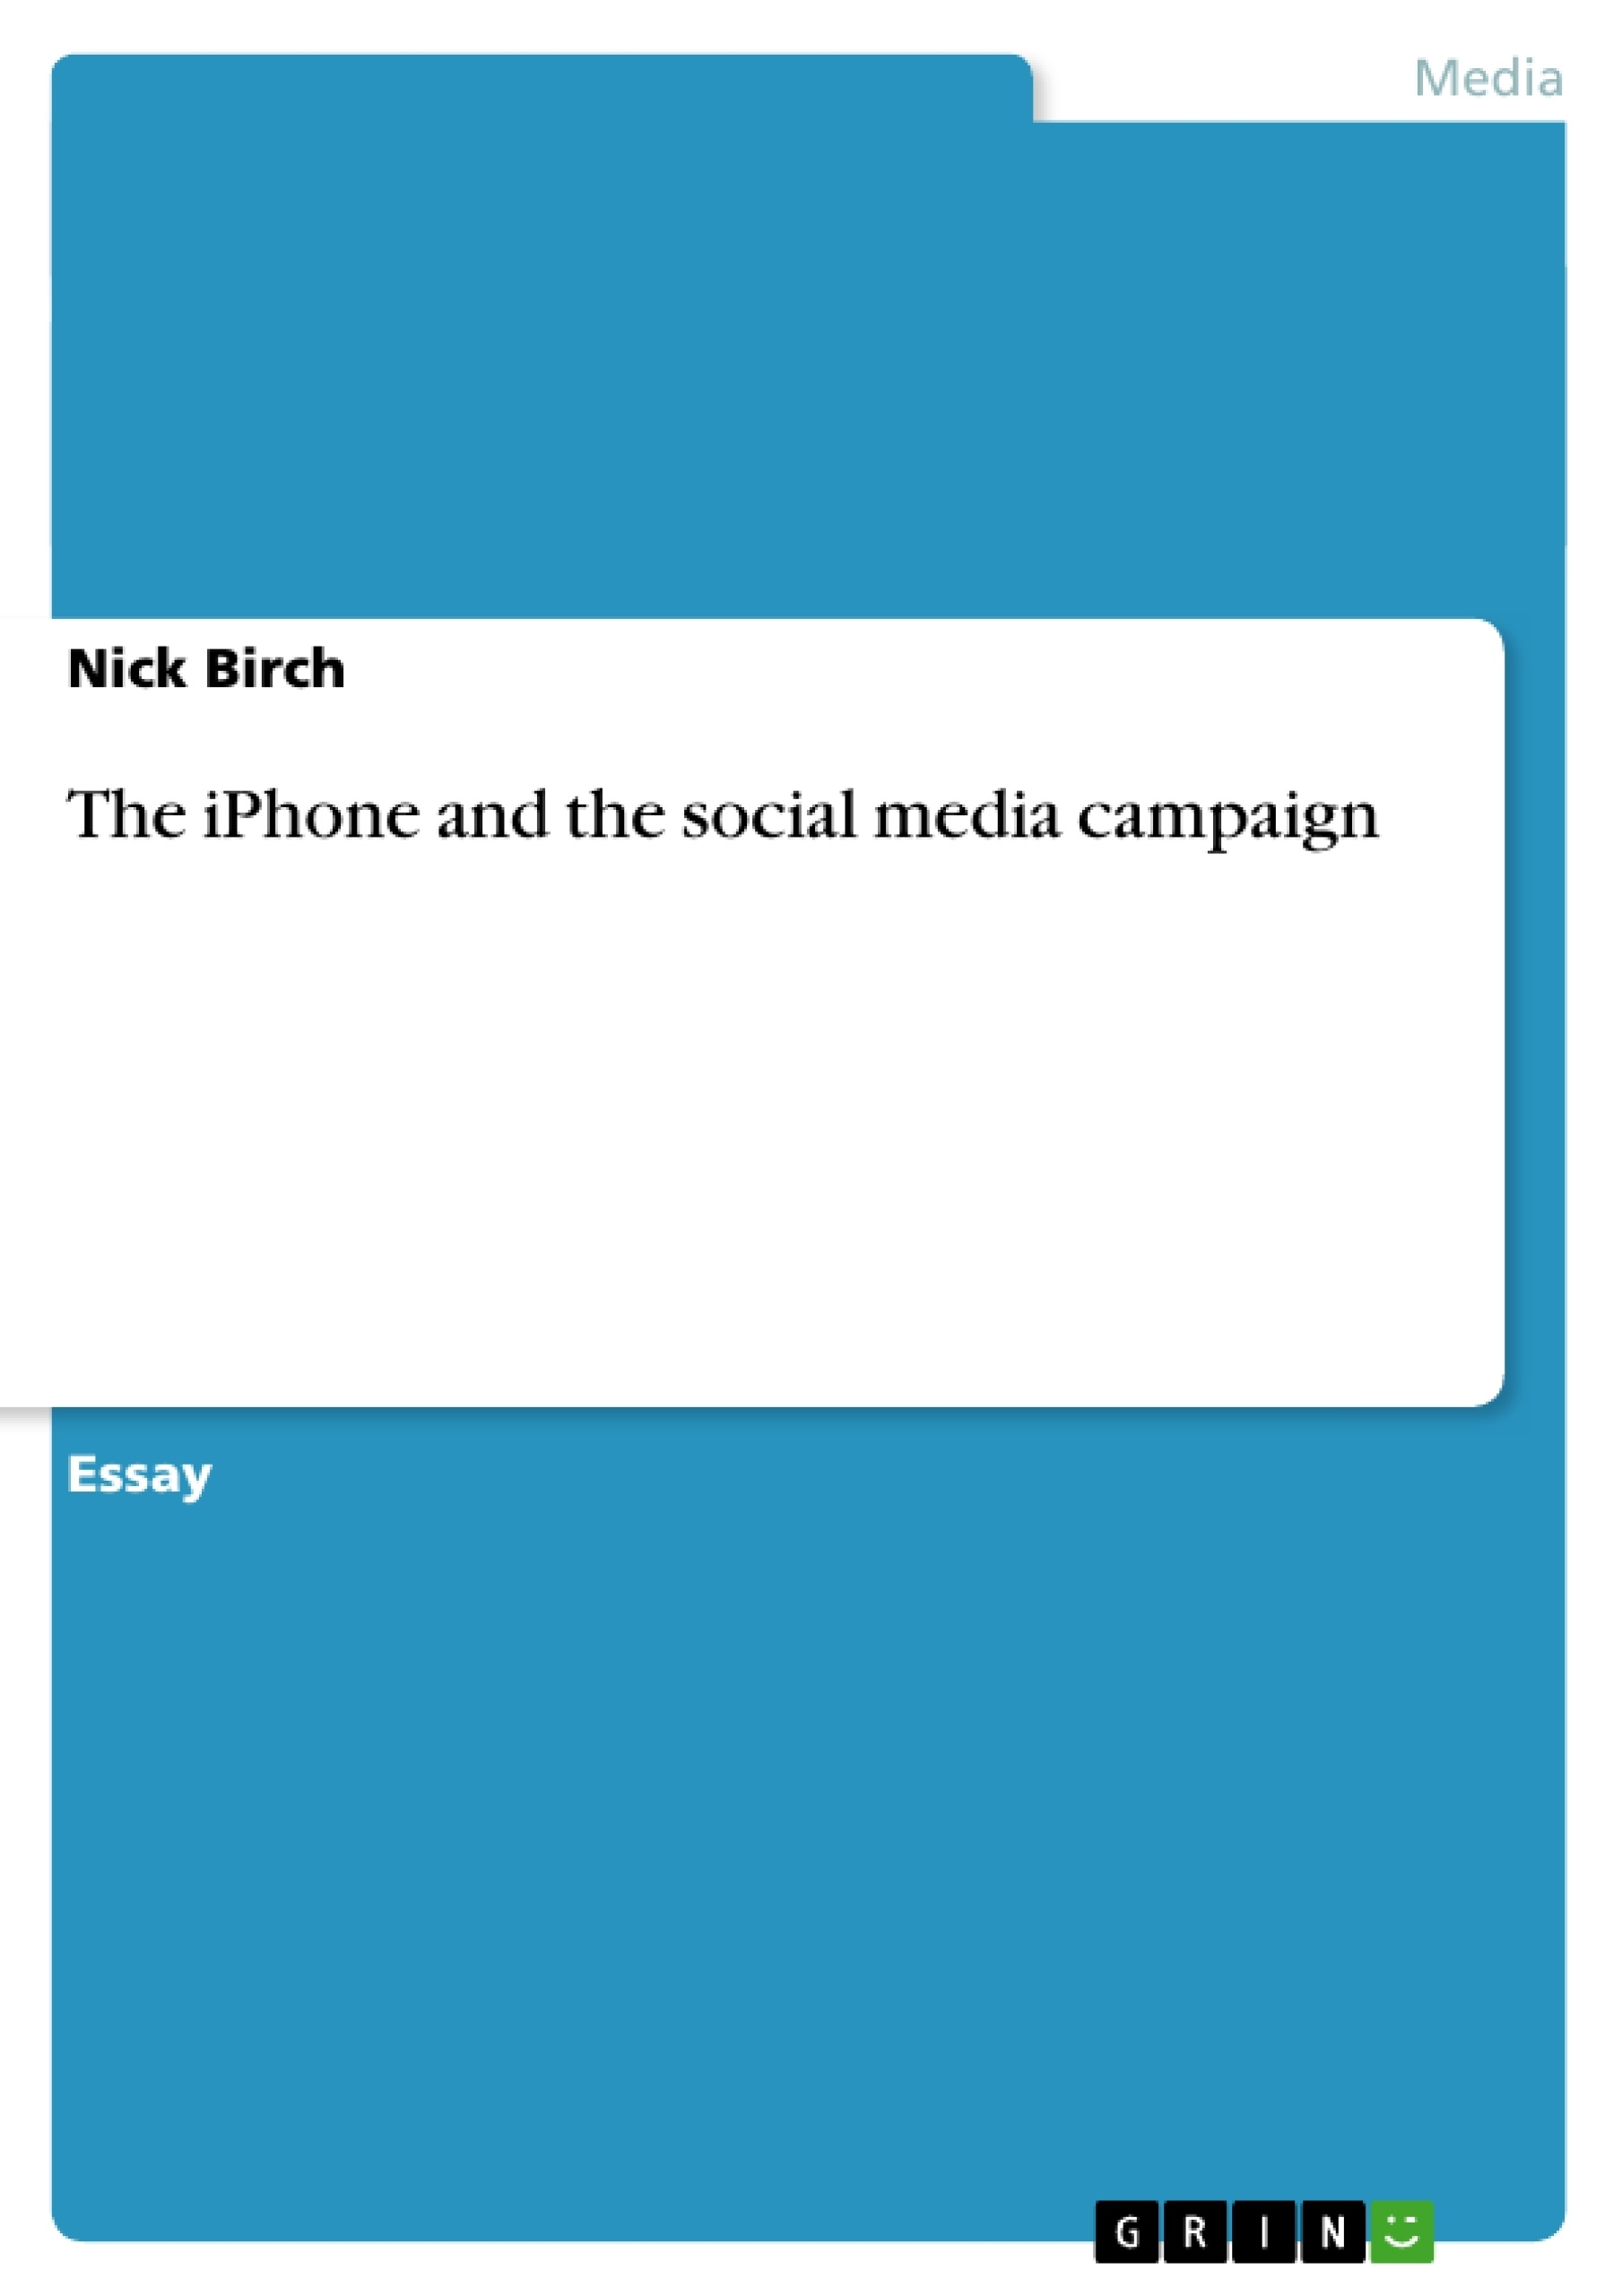 Title: The iPhone and the social media campaign